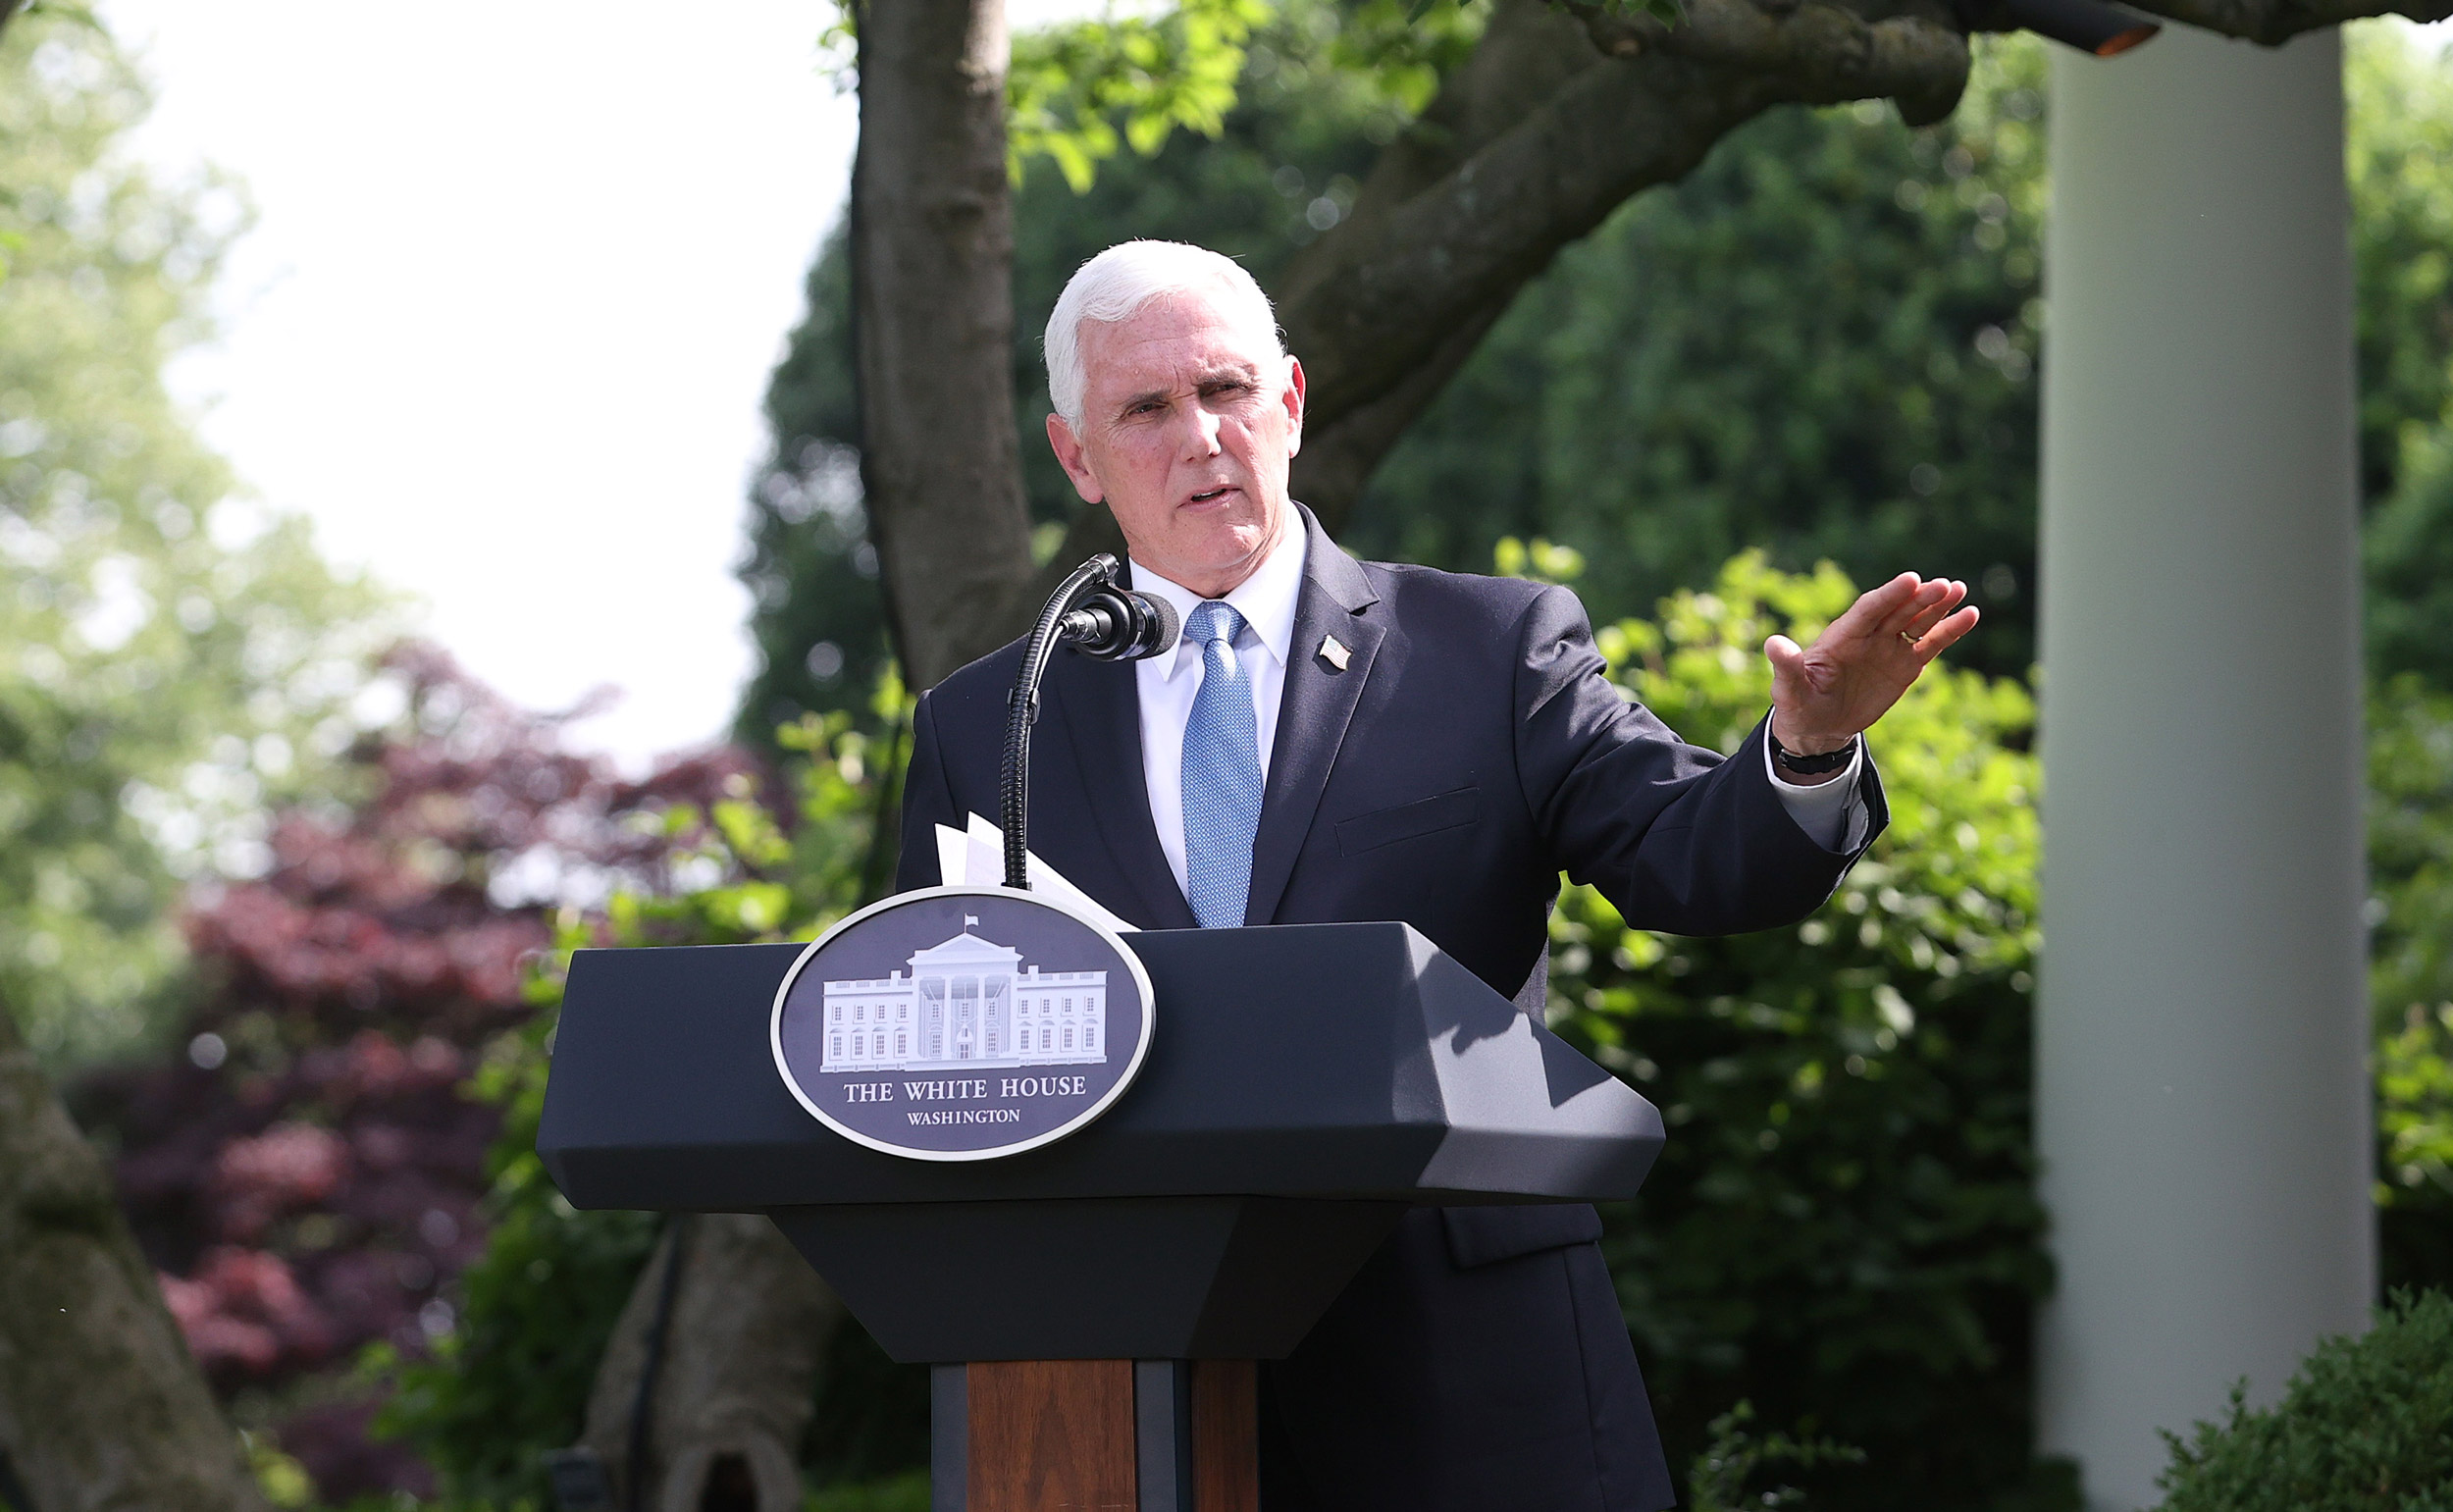 Vice President Mike Pence makes remarks during an event in the Rose Garden at the White House on May 26 in Washington.